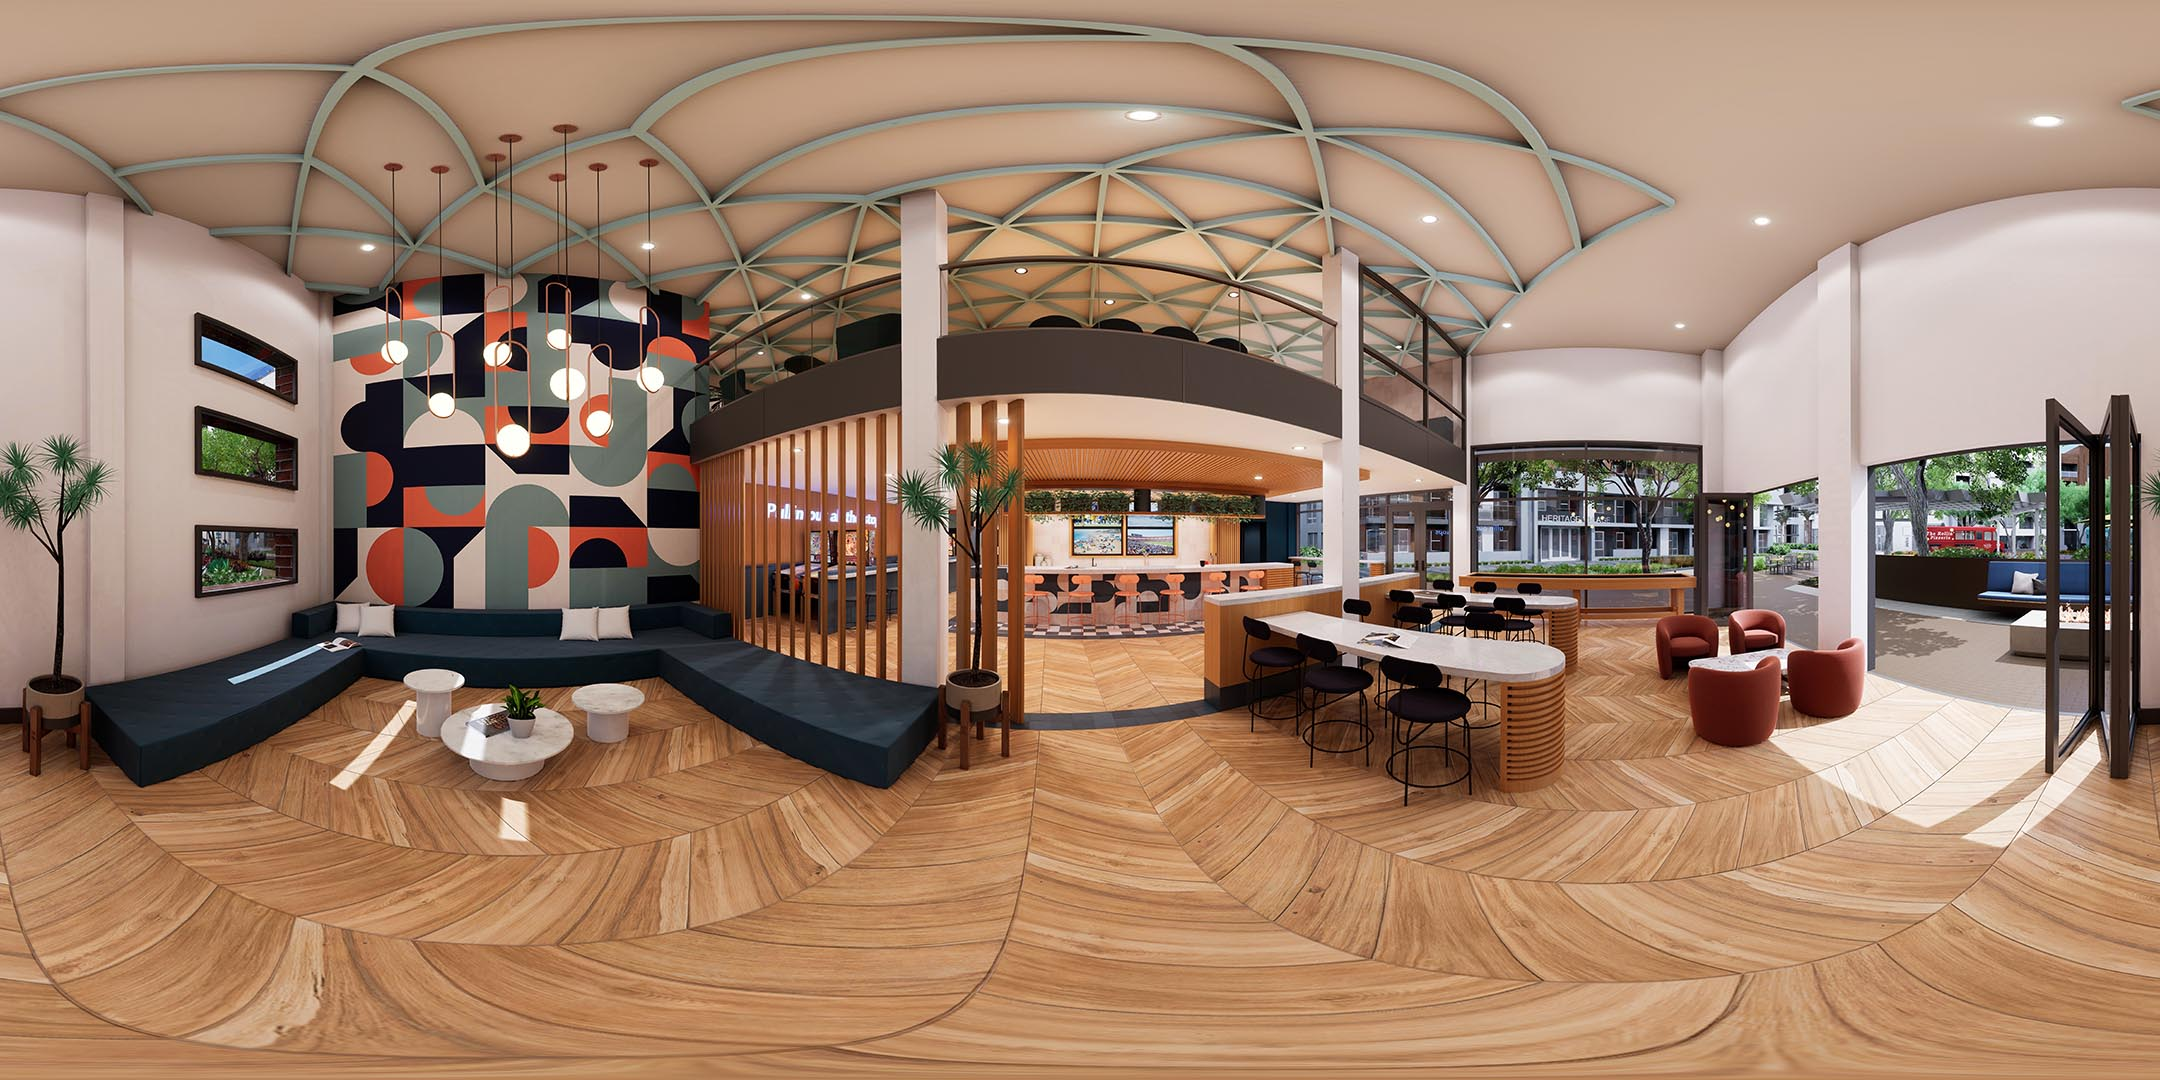 A 360 rendering of a lounge area with wood floors